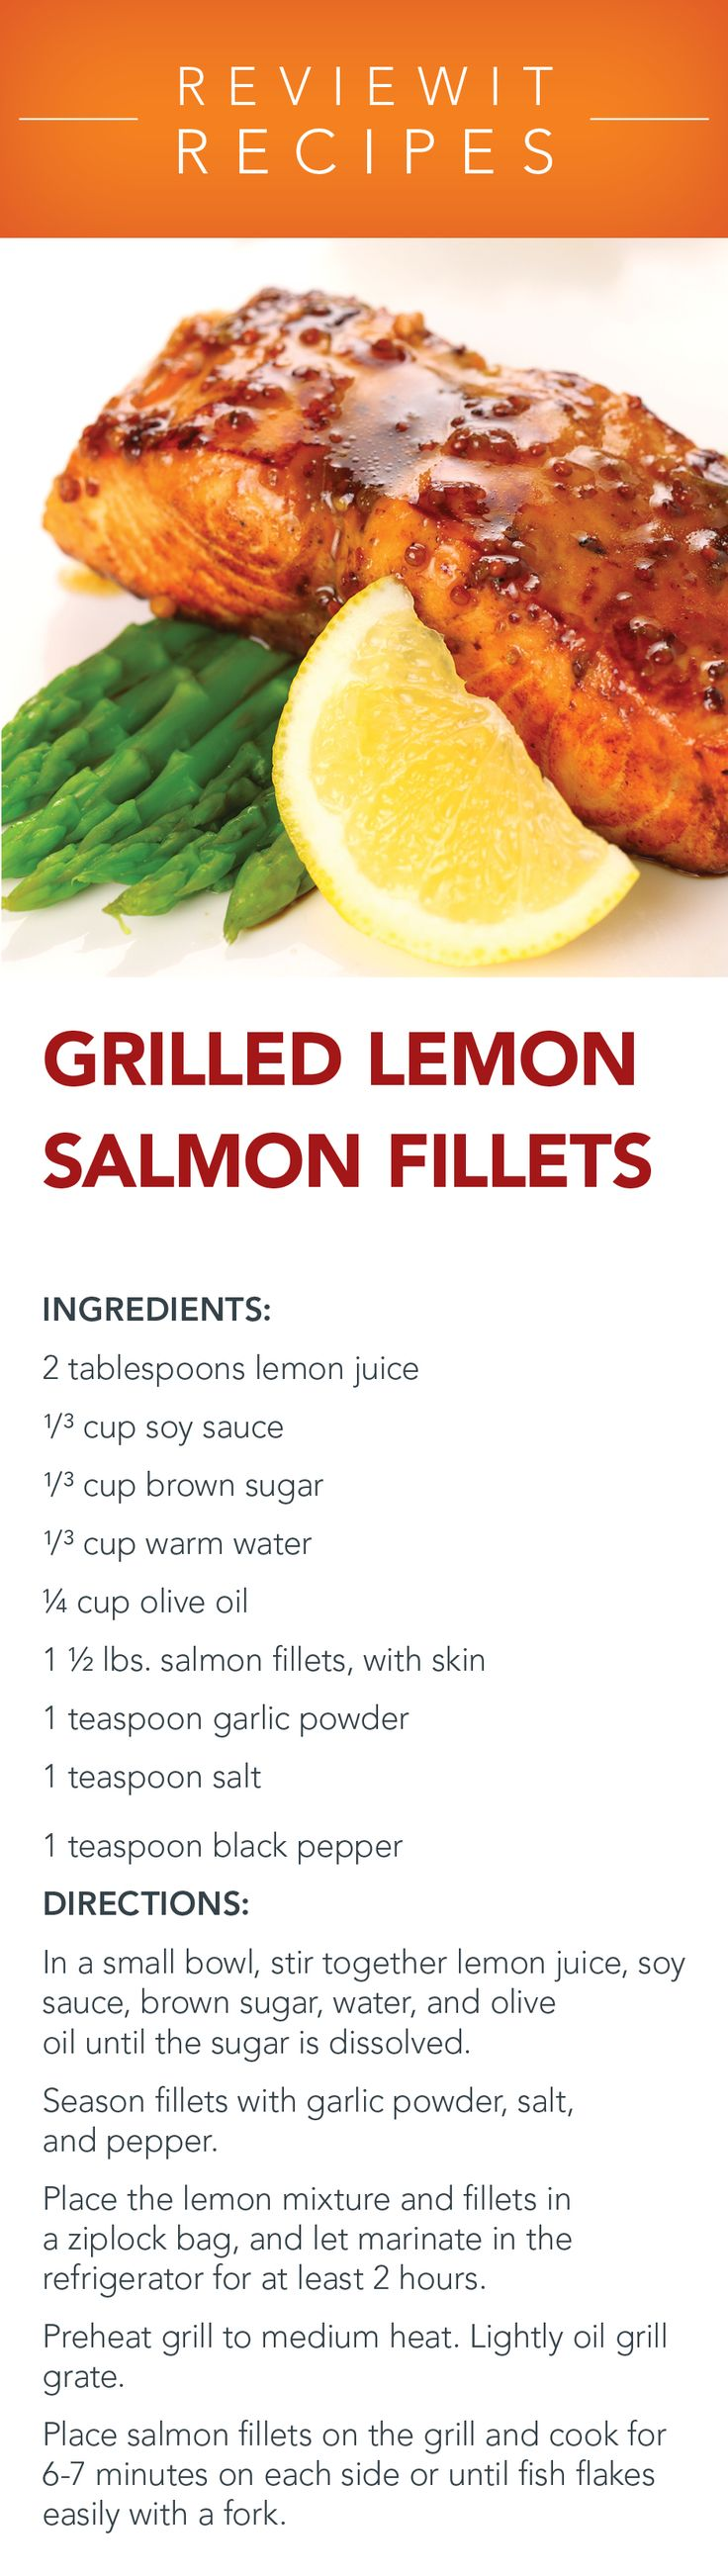 Grill Recipes  Grilled Lemon Salmon Fillets  Maybe Replace The Sugar With  Honey To Make